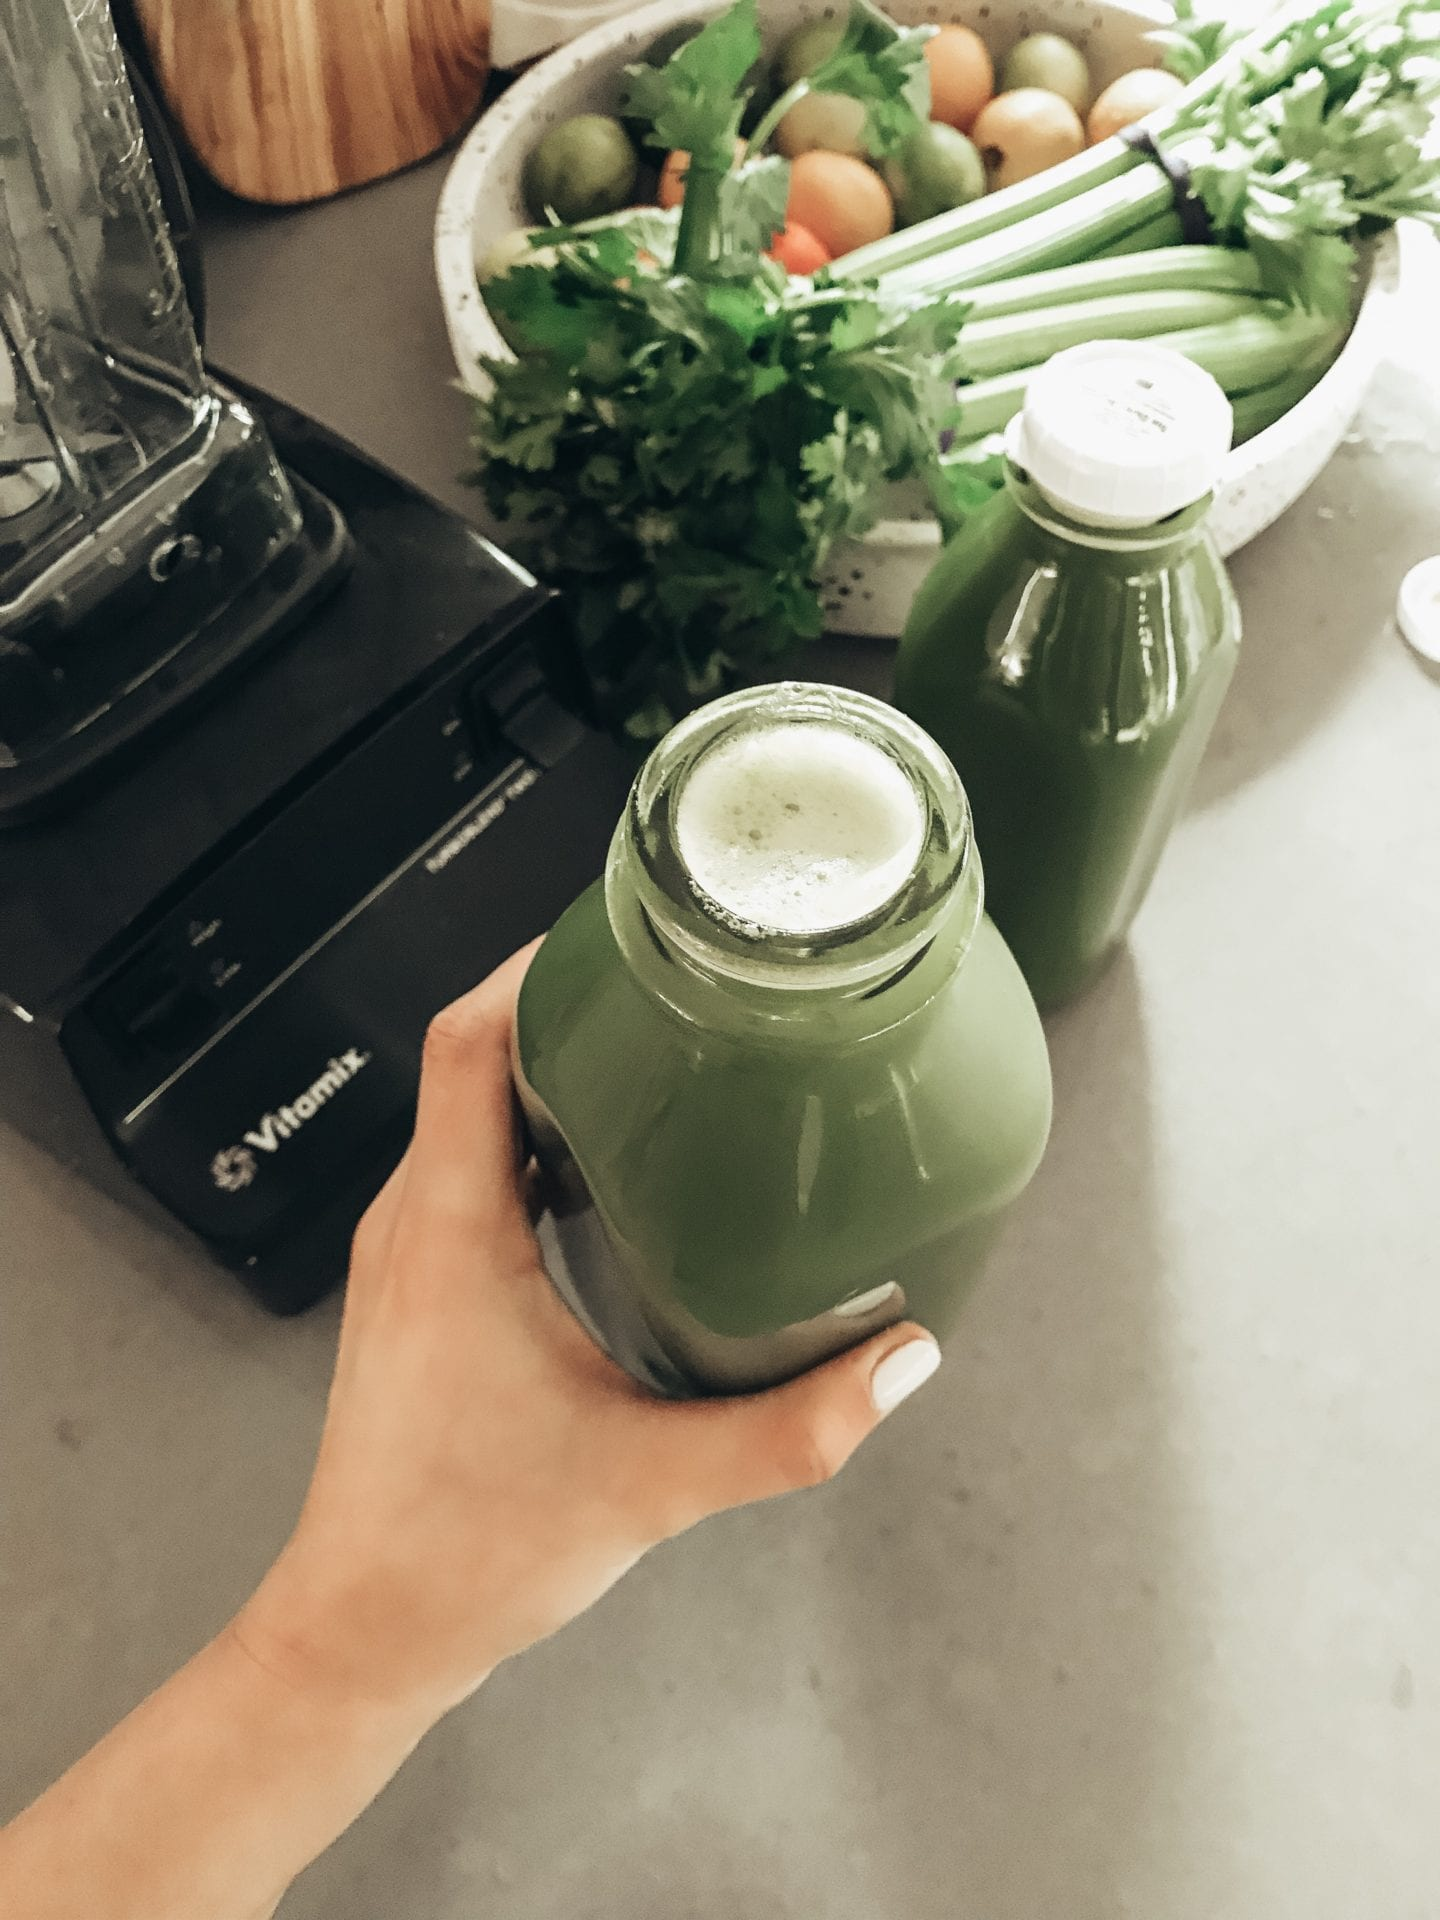 Celery Juice Benefits I Keto Diet I Juicing on the Ketosis Diet I Celery Juice I via justaddglam.com | Top 3 Celery Juice Benefits on the Keto Diet featured by top US lifestyle blog, Just Add Glam